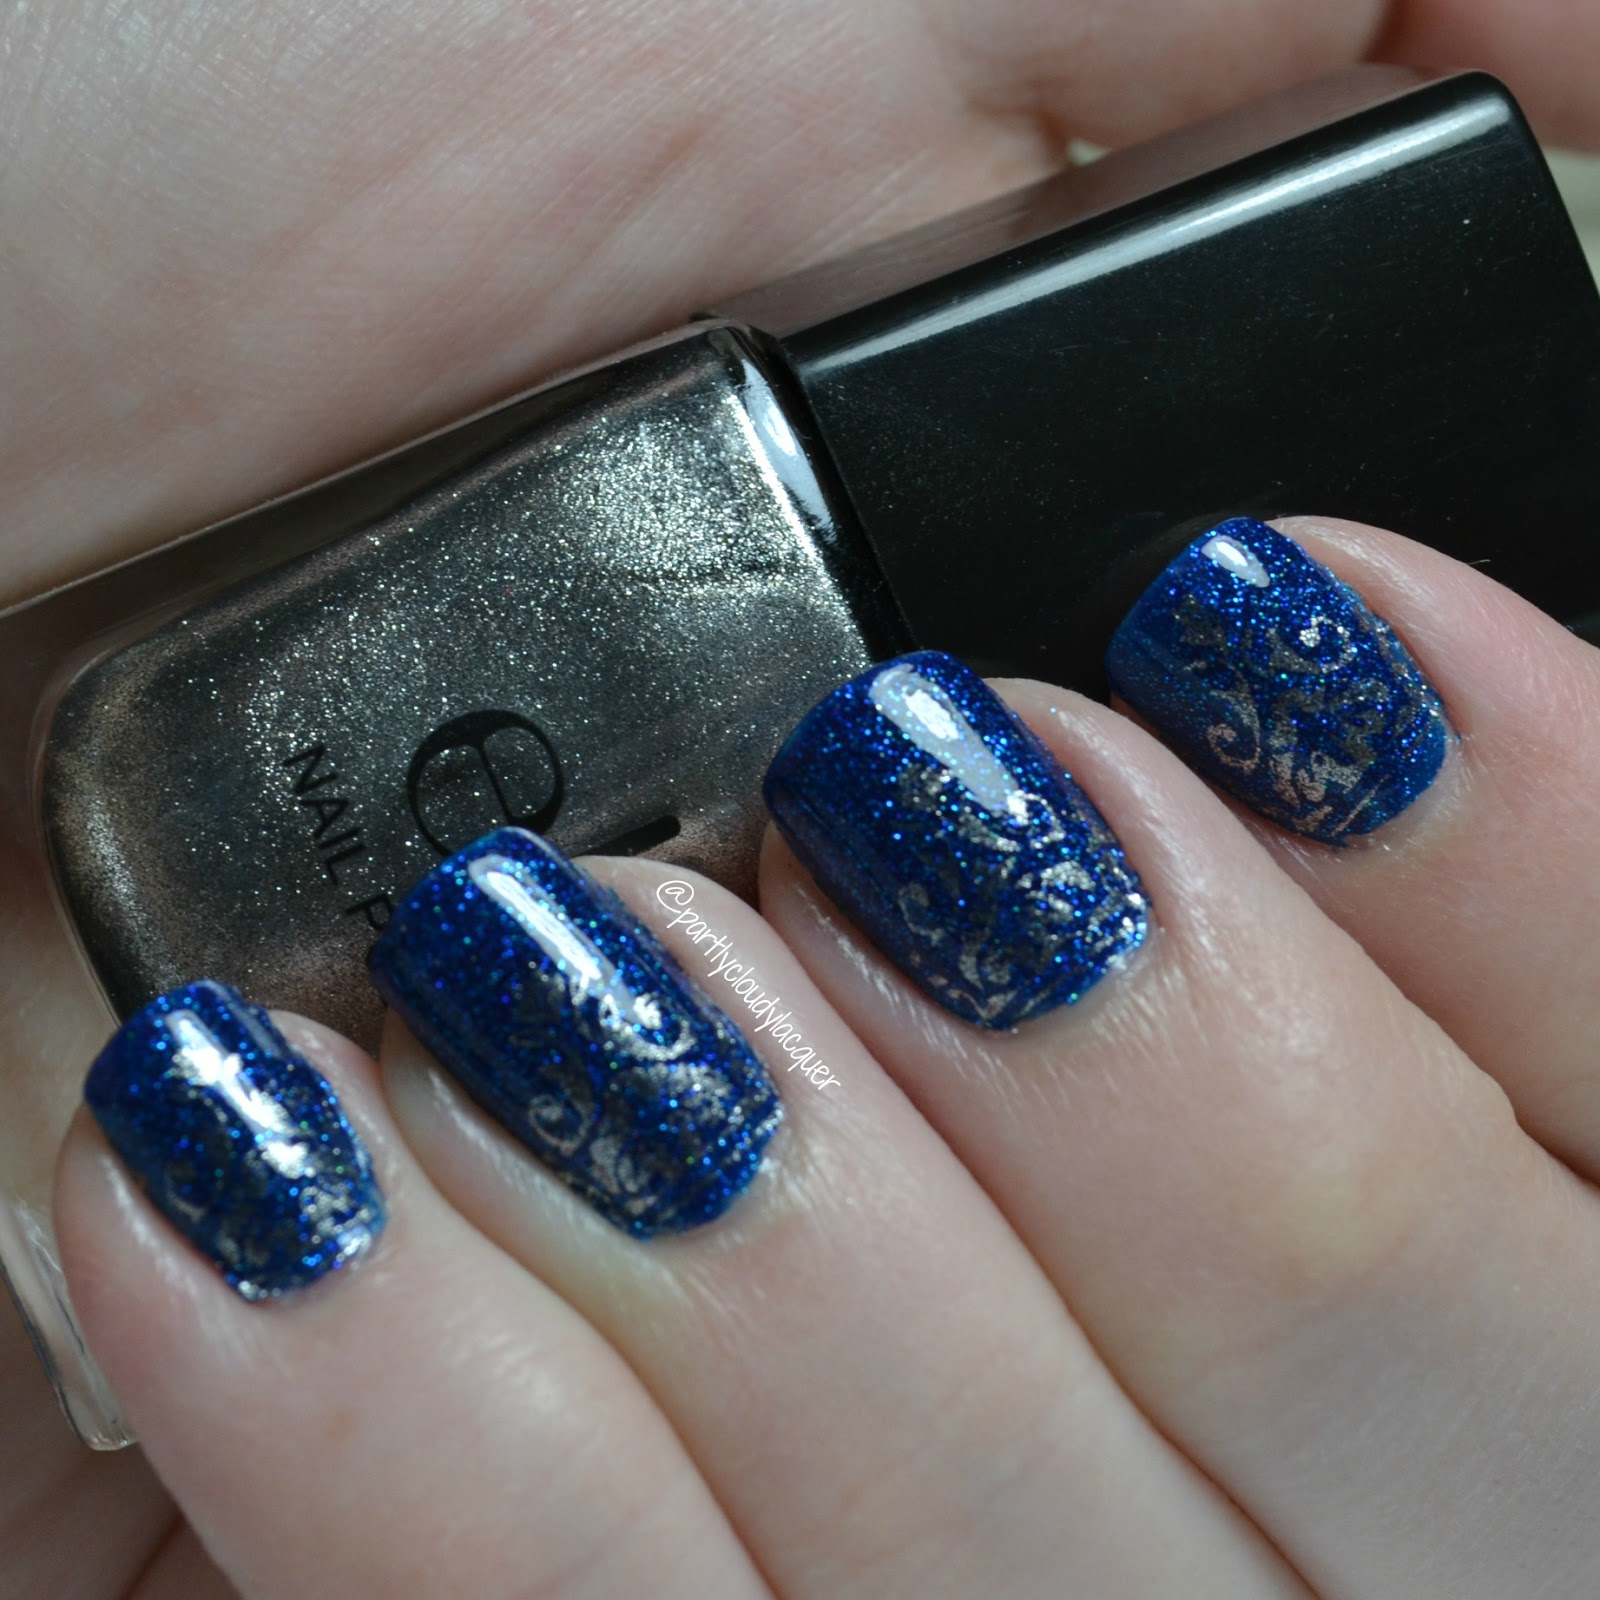 Azature Blue Diamond + Stamping | Partly Cloudy With a Chance of Lacquer